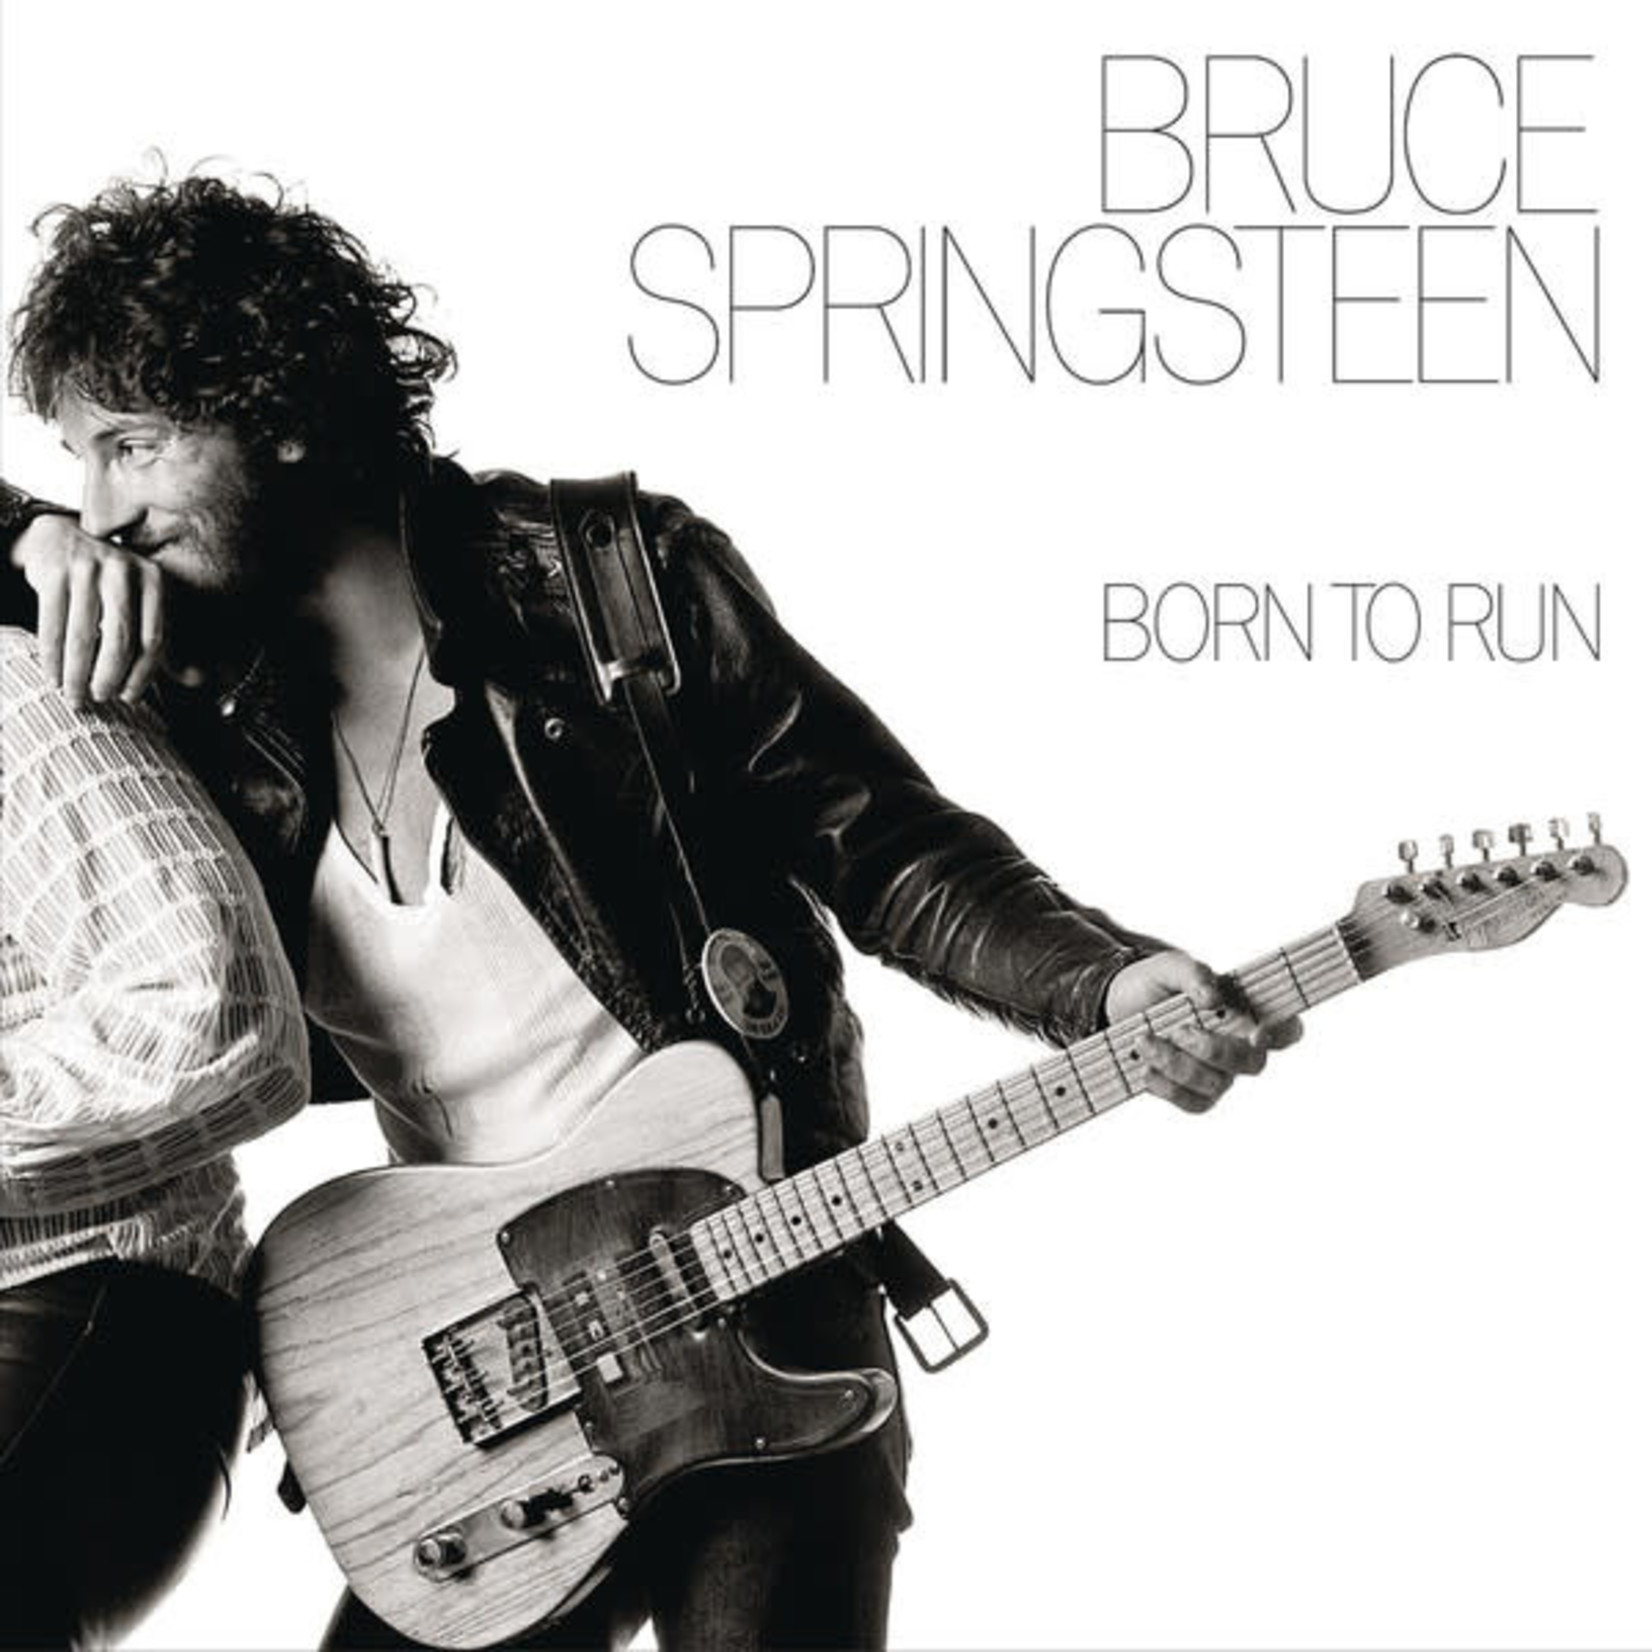 BRUCE SPRINGSTEEN & THE E STREET BAND BORN TO RUN (REMASTERED)